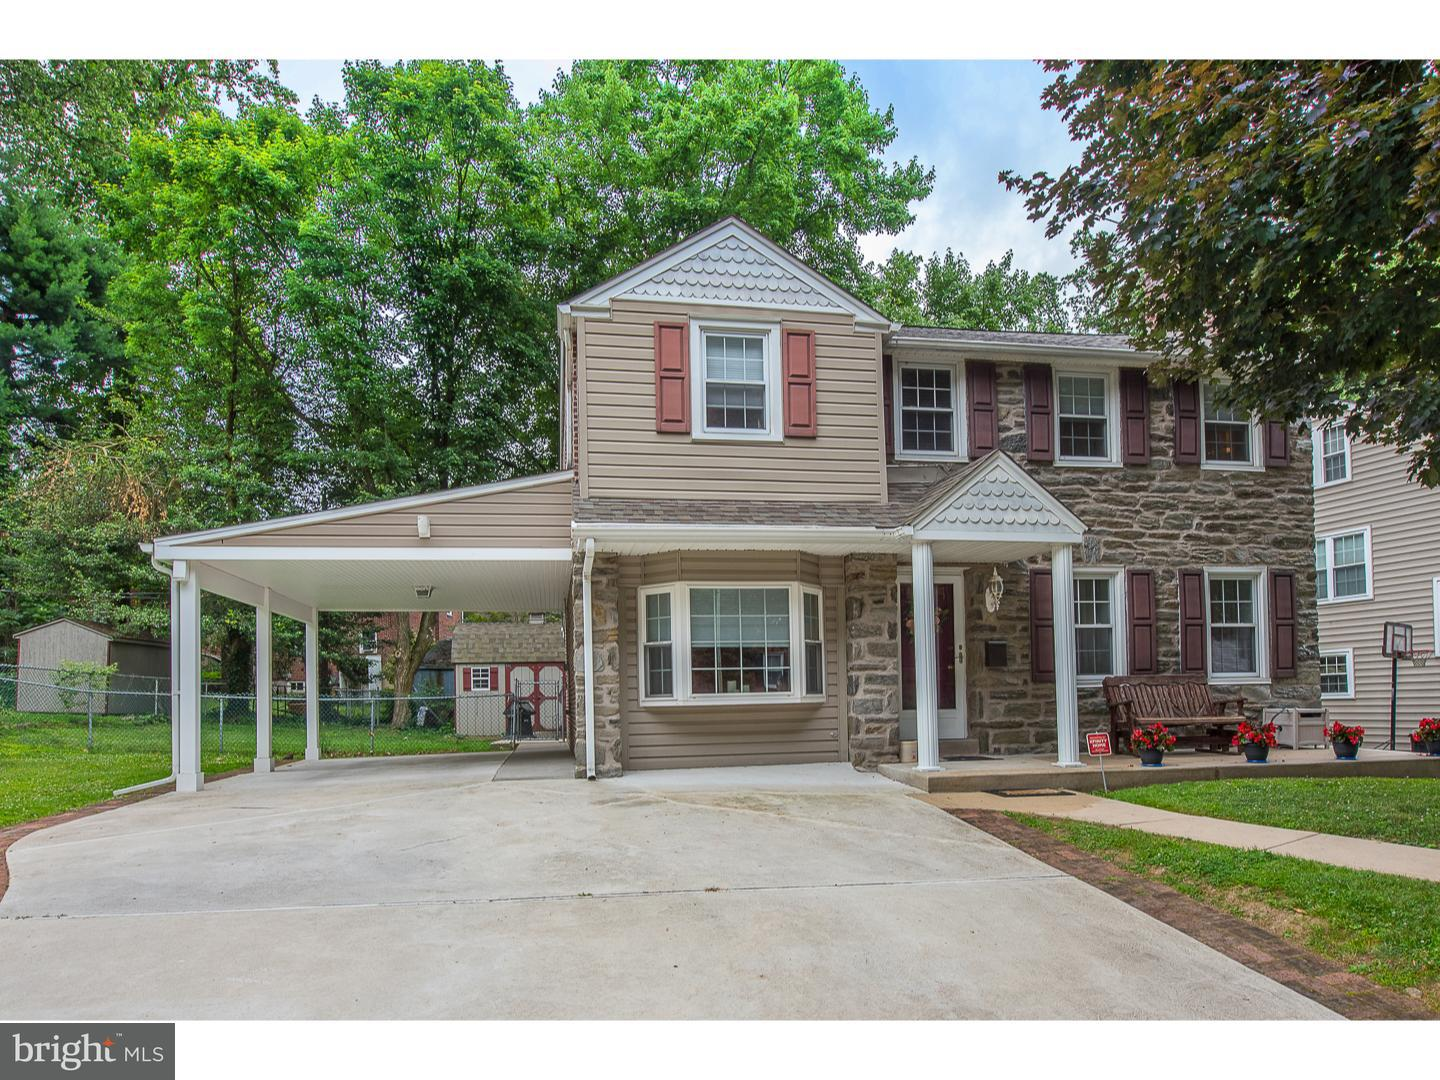 Single Family Home for Sale at 244 WARRIOR Road Drexel Hill, Pennsylvania 19026 United States